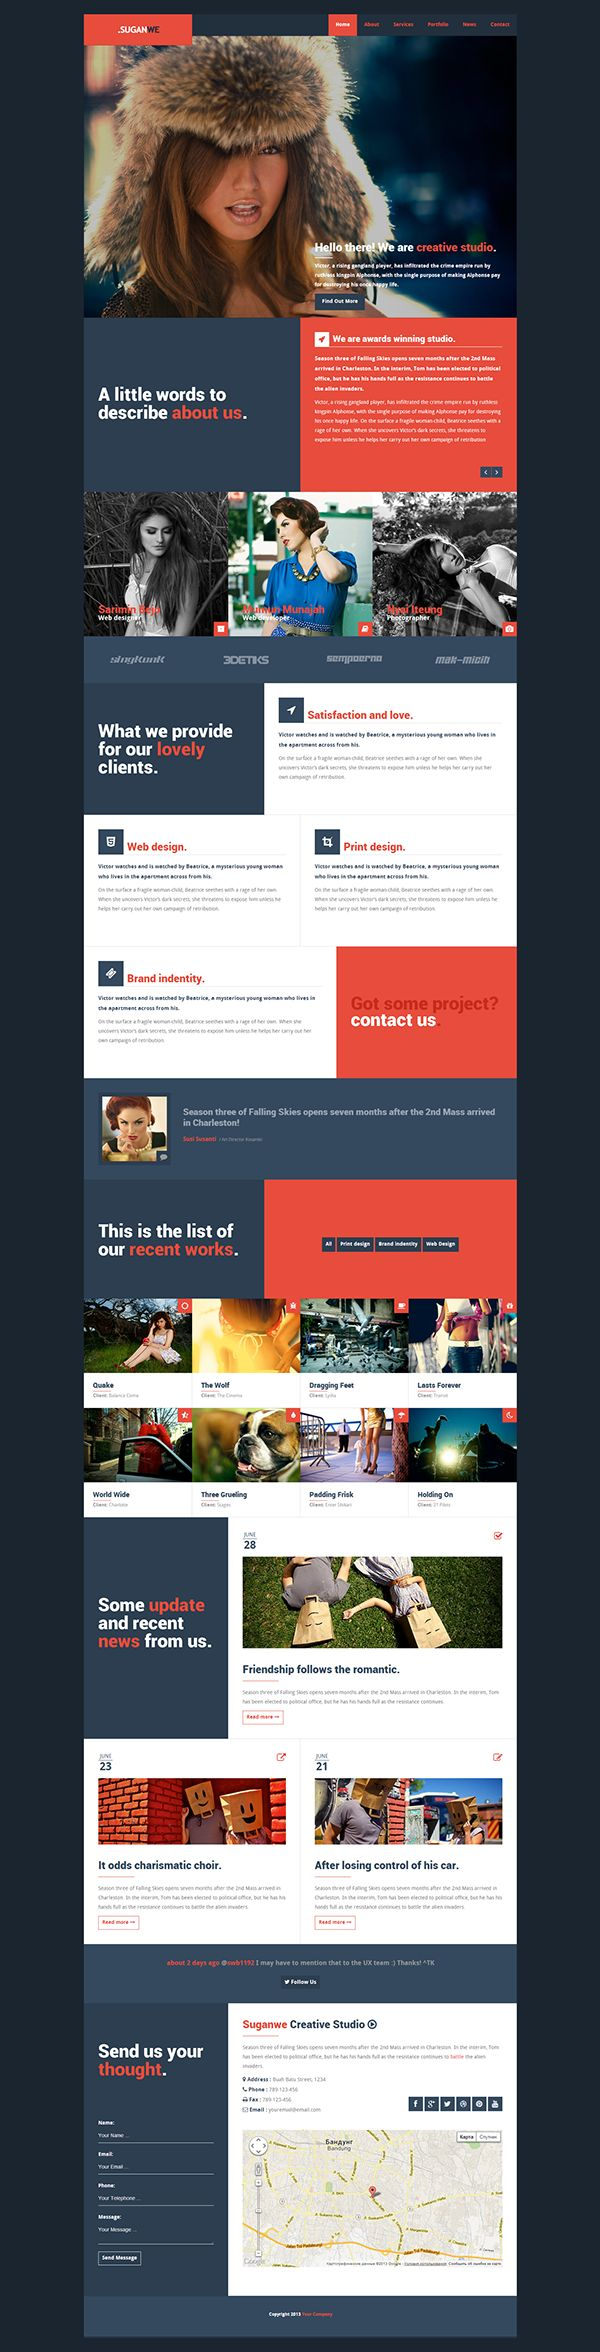 Suganwe - Responsive One Page Template HTML5 on Behance